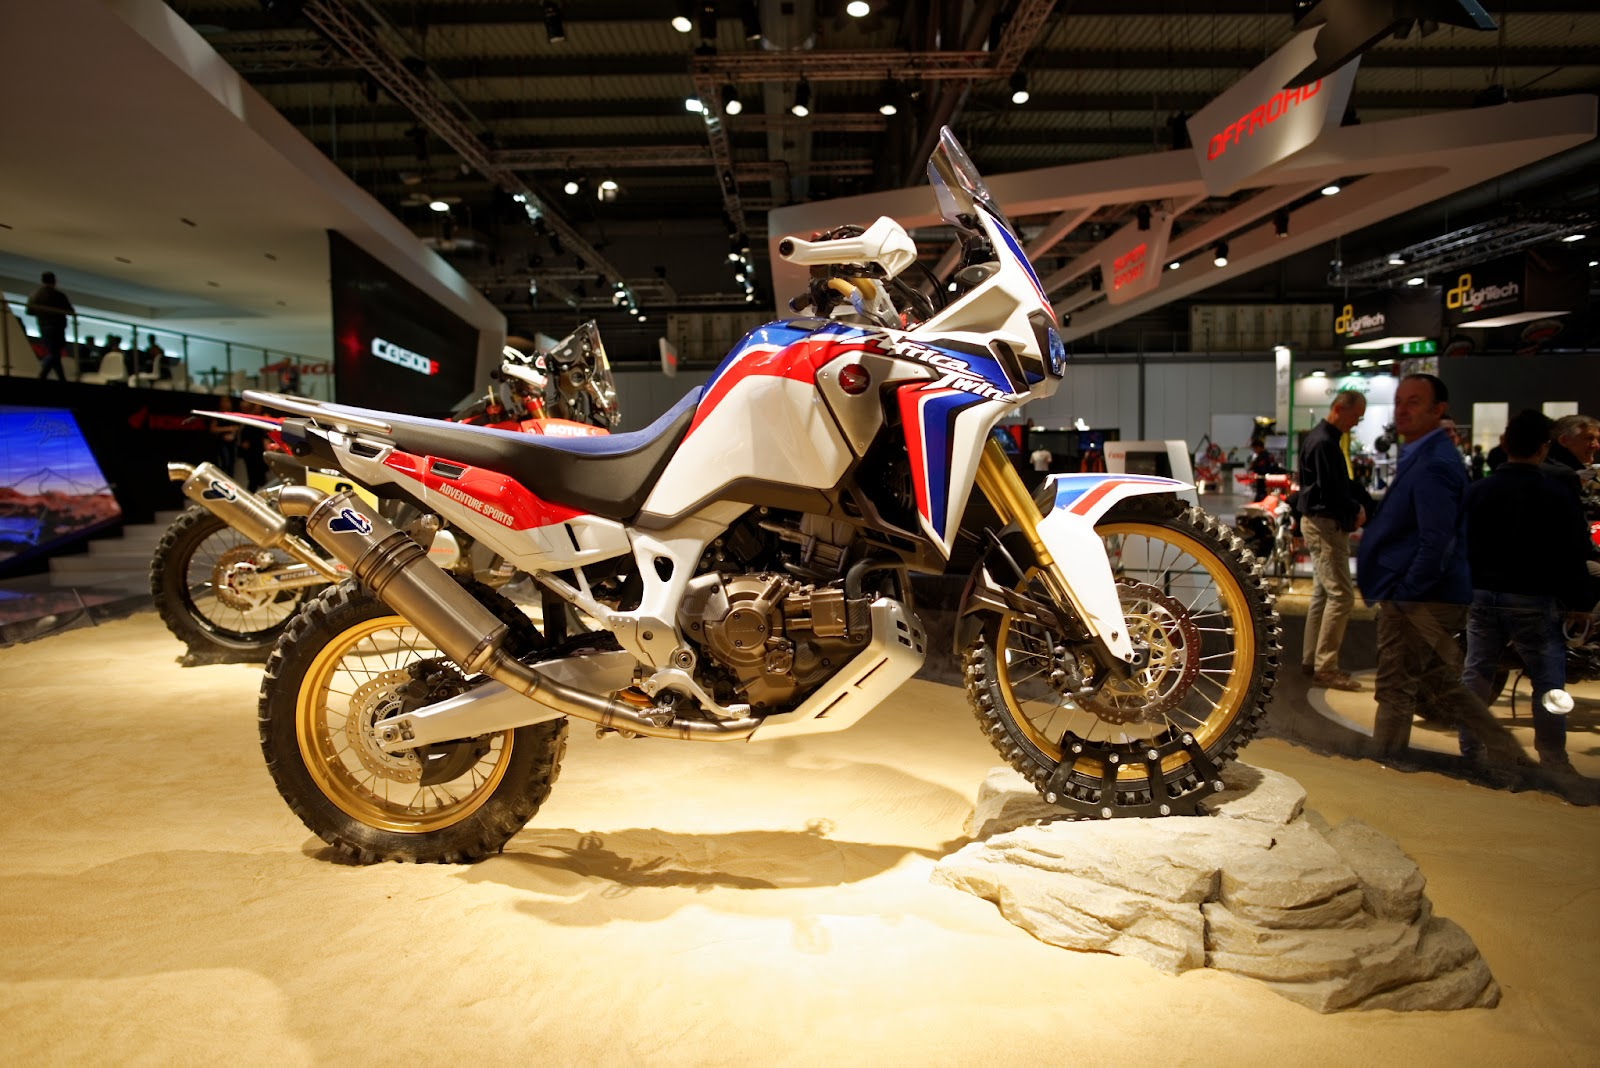 eicma 2015 some pictures africatwin org honda africa twin forum. Black Bedroom Furniture Sets. Home Design Ideas